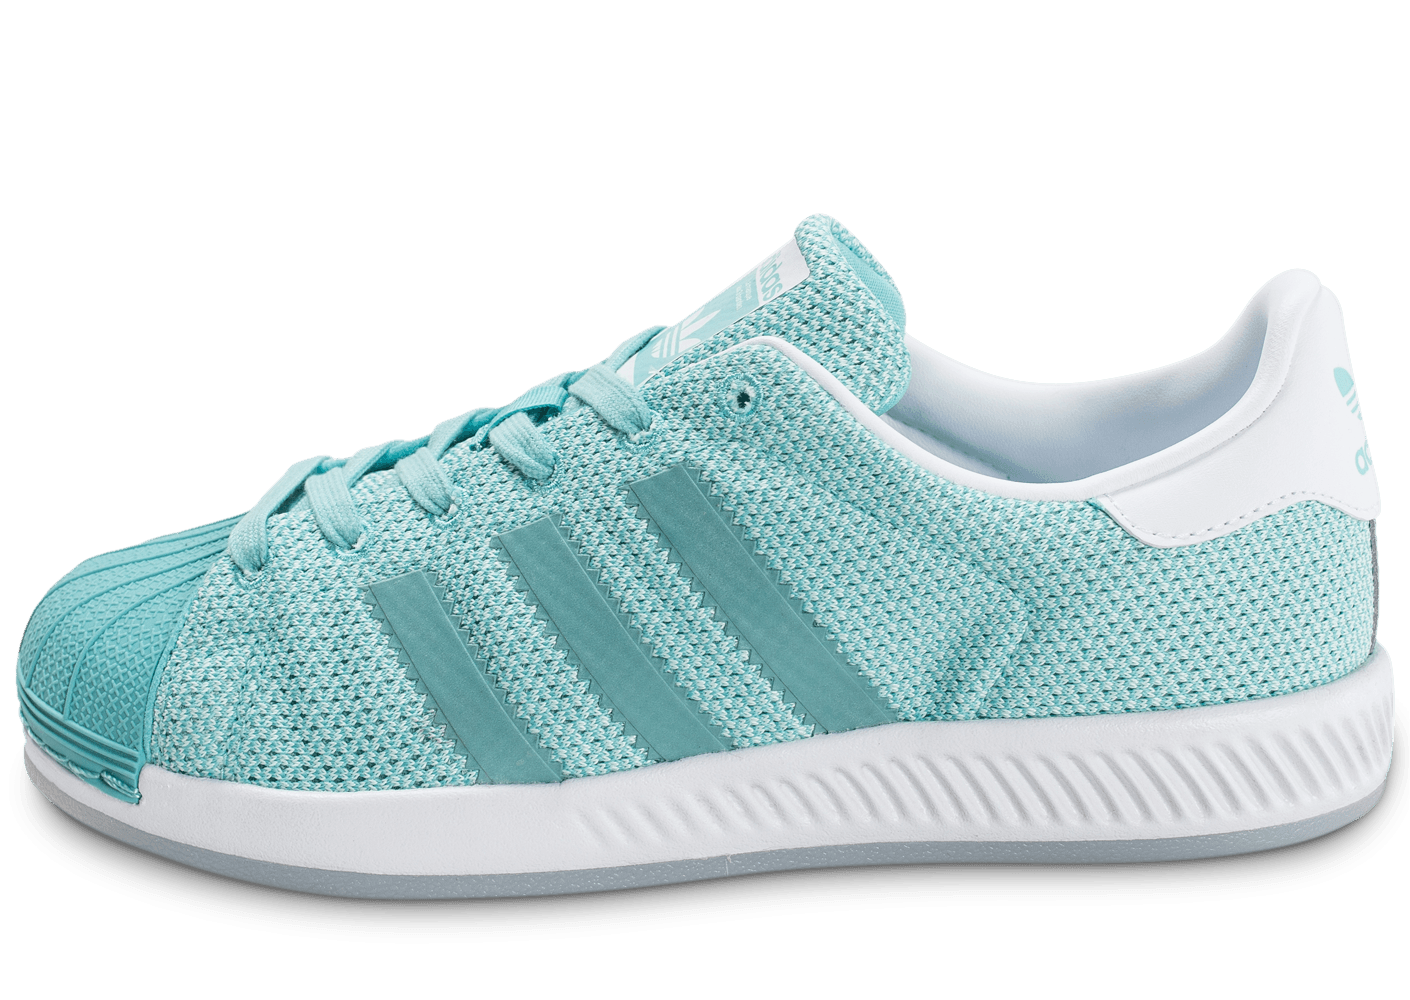 adidas Superstar Bounce turquoise